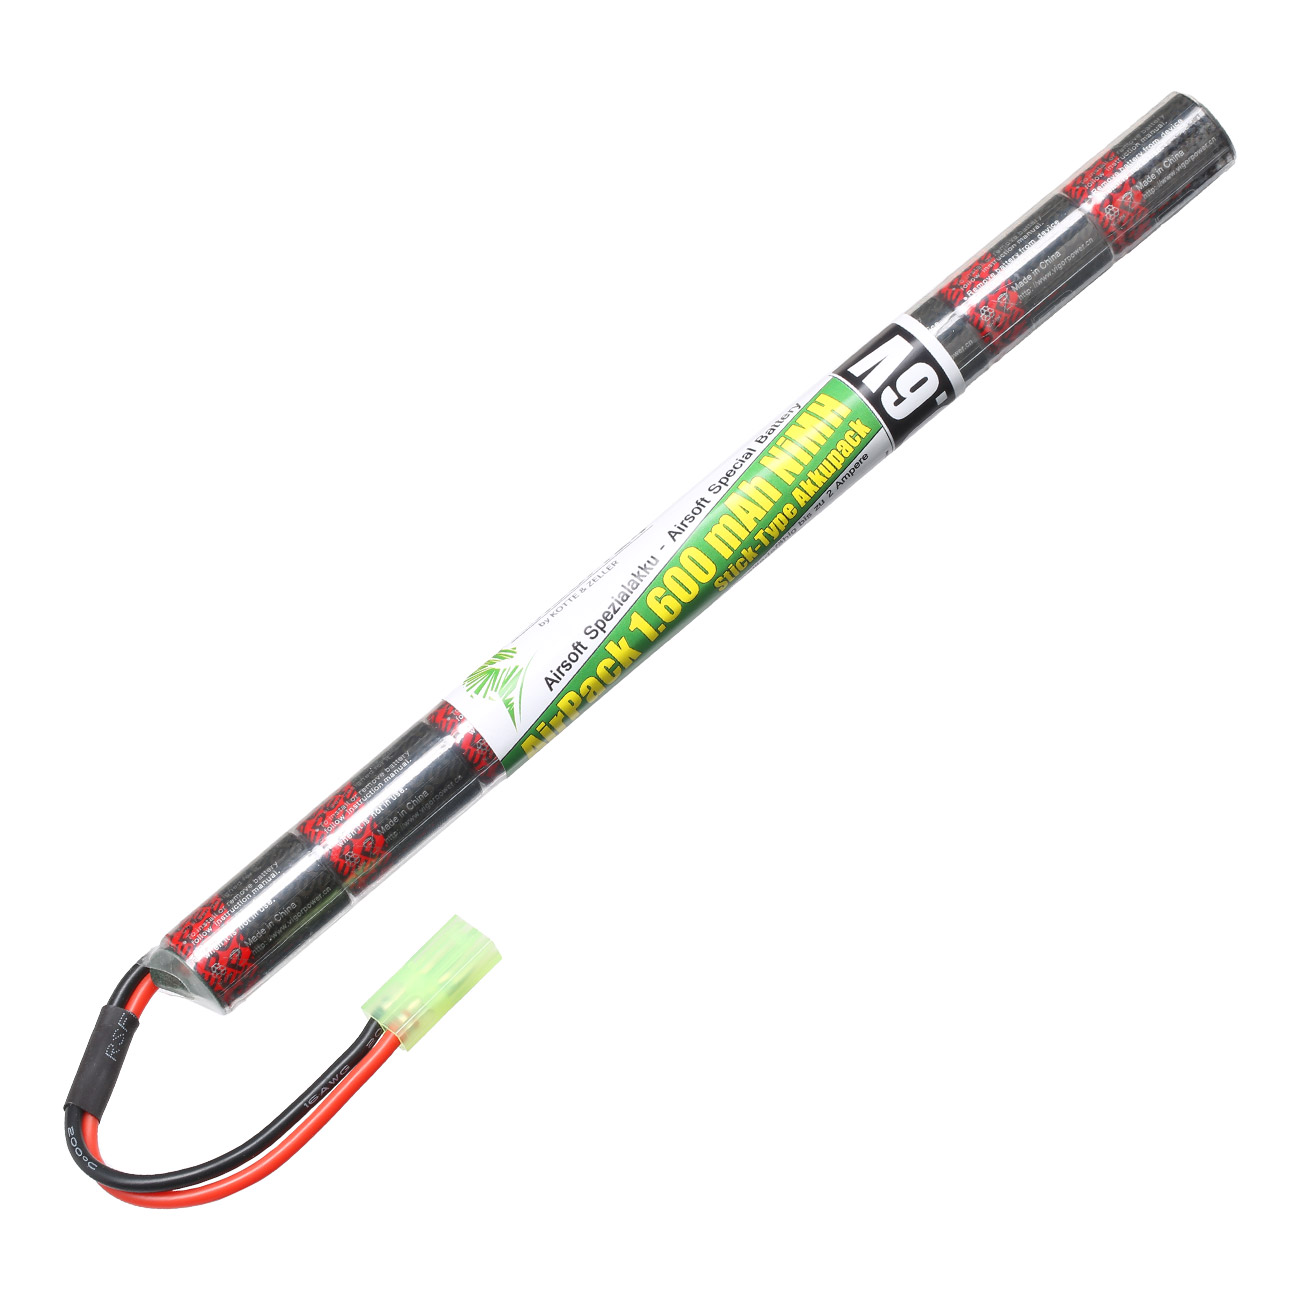 Airsoft24 AirPack Akku 9.6V 1600mAh NiMH Stick-Type mit Mini-Tam Anschluss 0